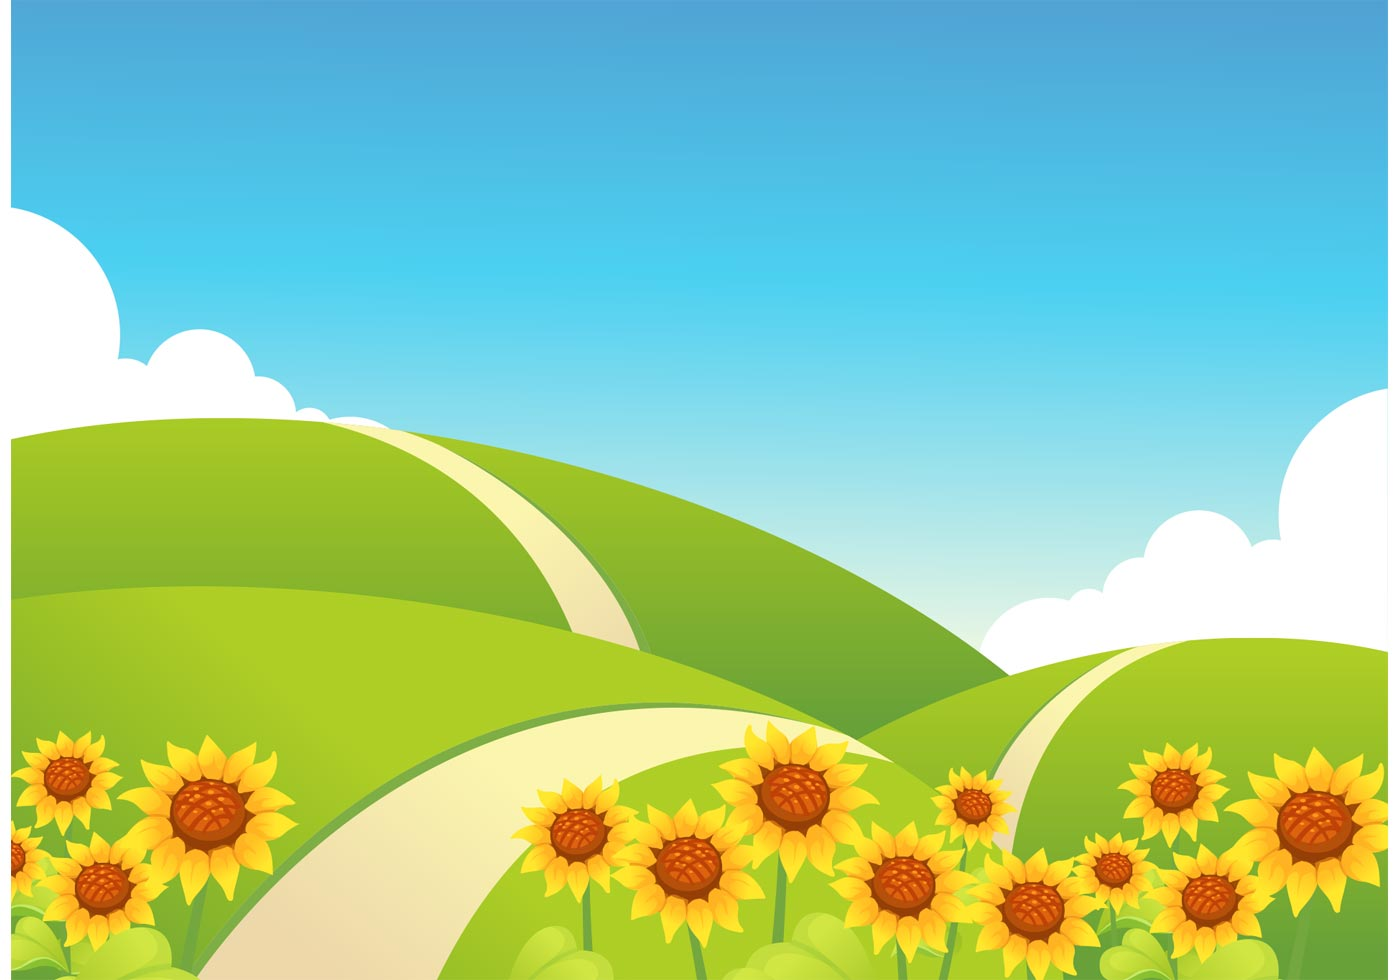 1400x980 Free Rolling Hills With Sunflowers Vector